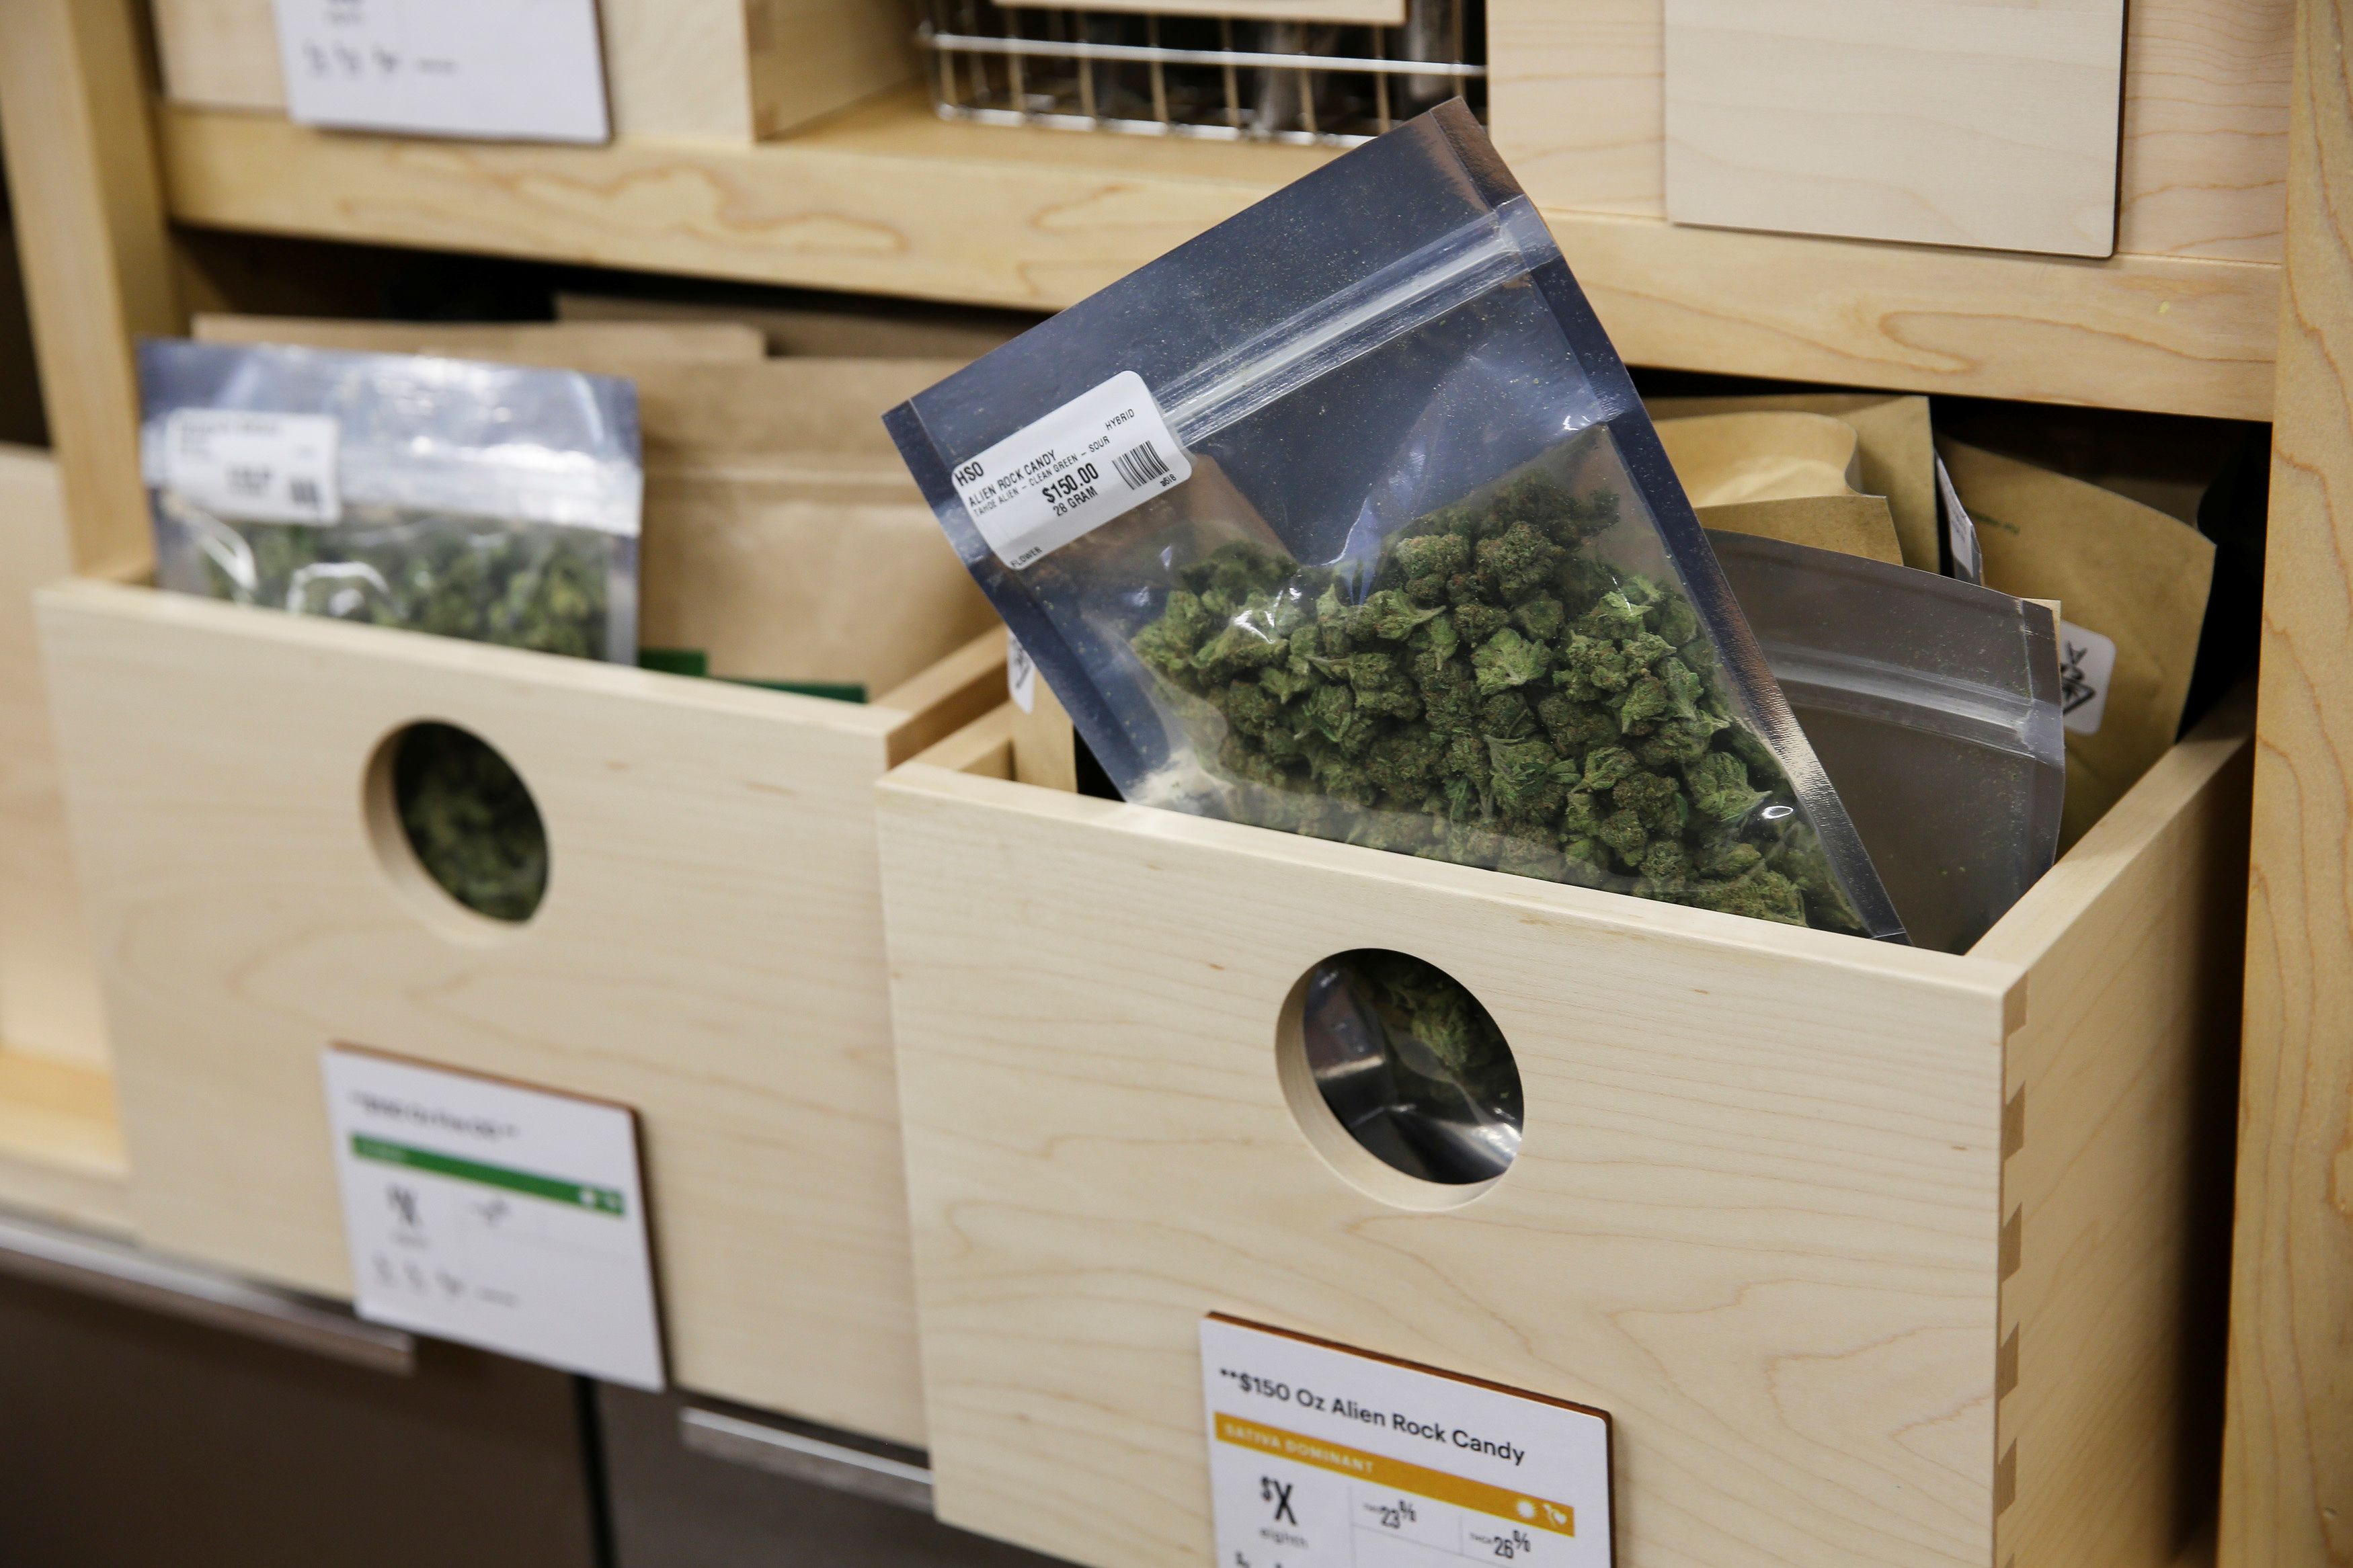 An easy fix could give the marijuana industry access to banking